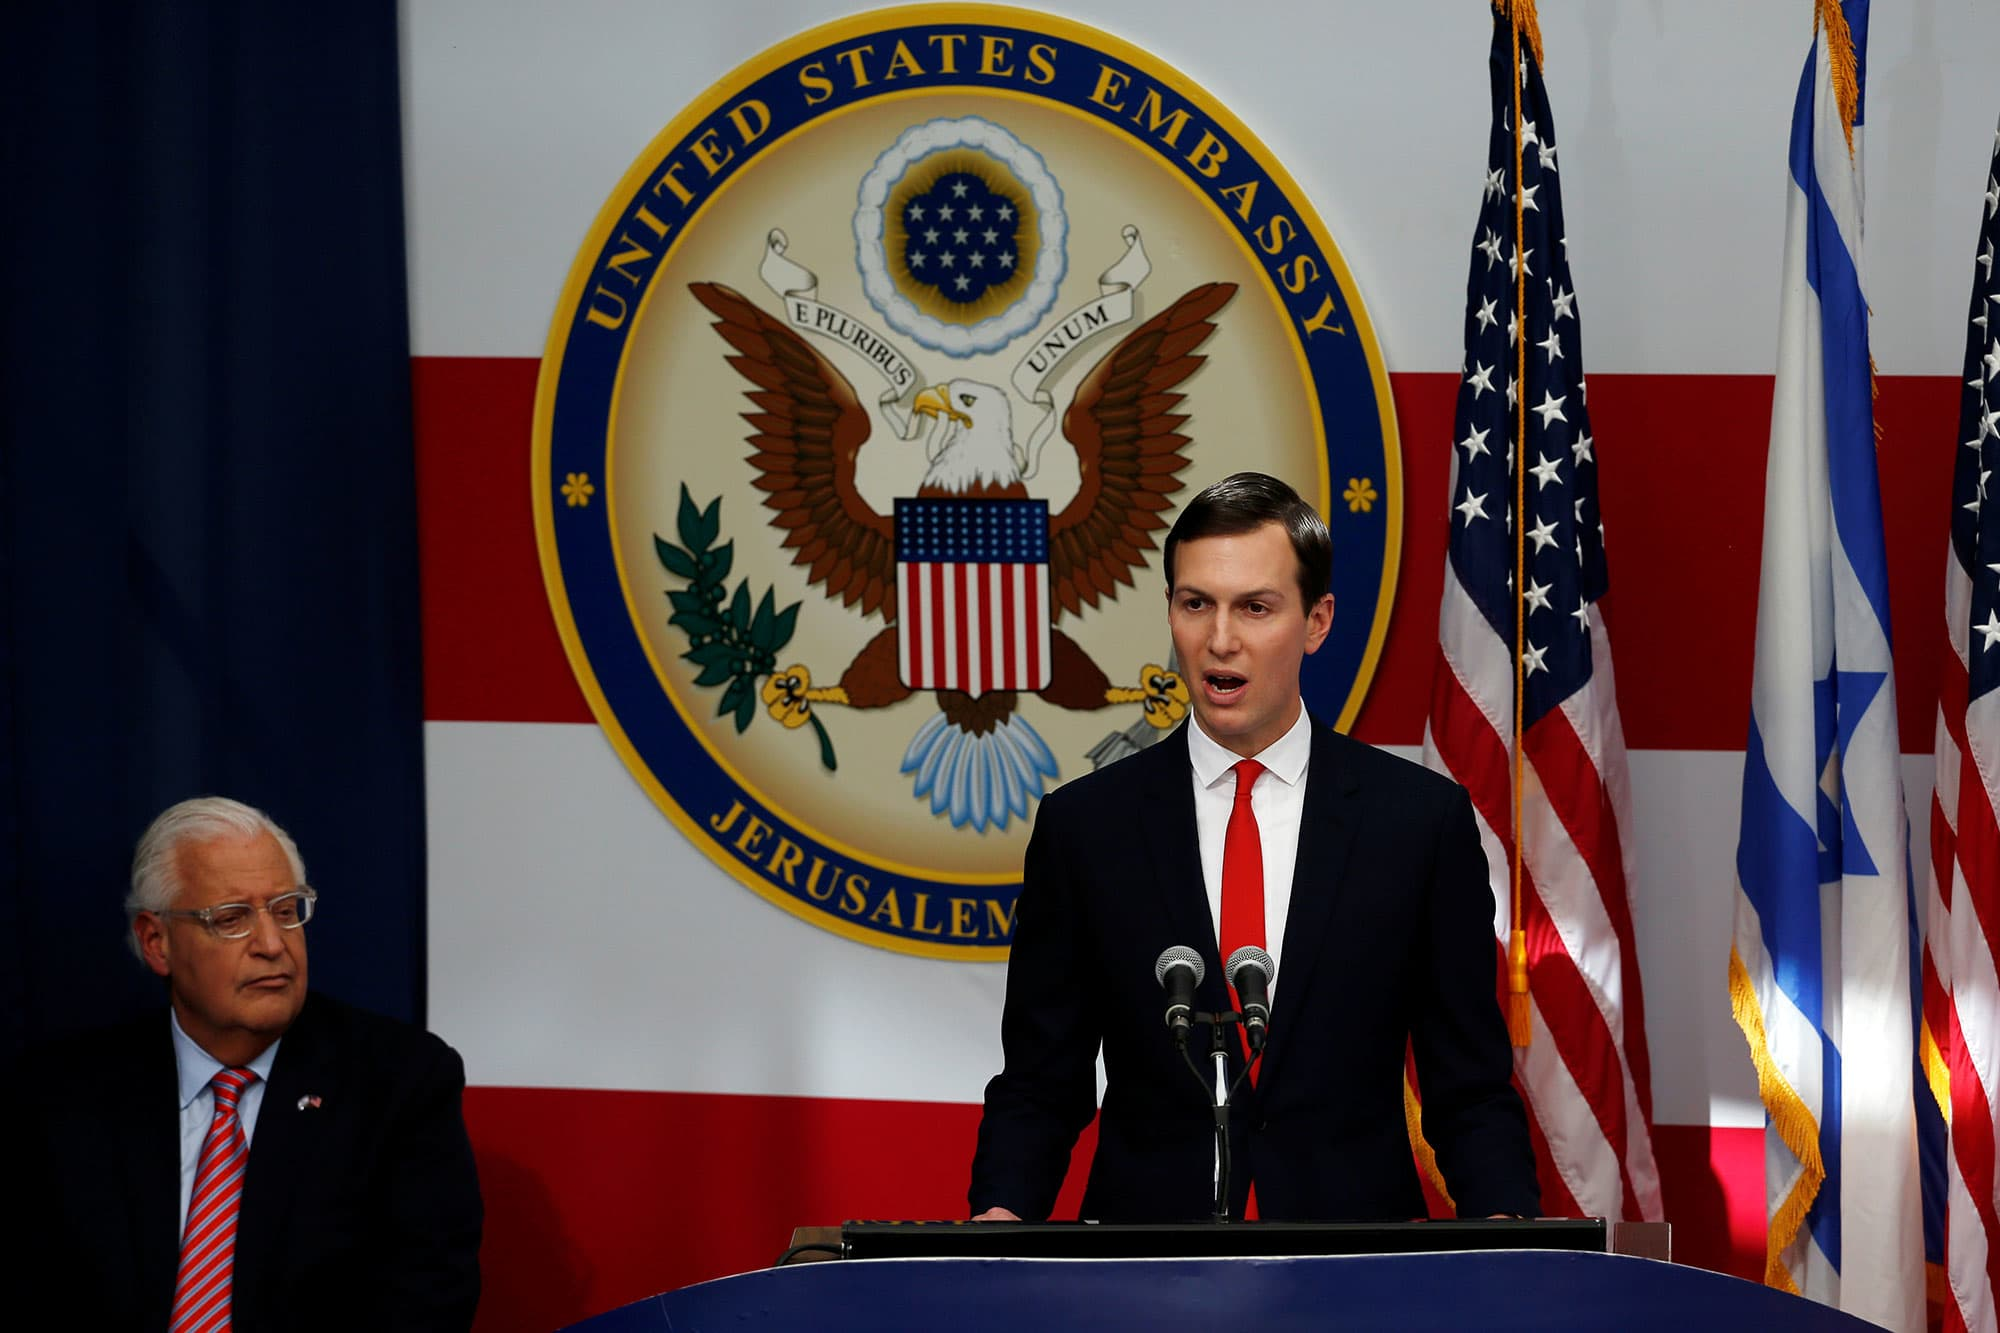 Jared Kushner says his Middle East peace plan will be a 'good starting point'